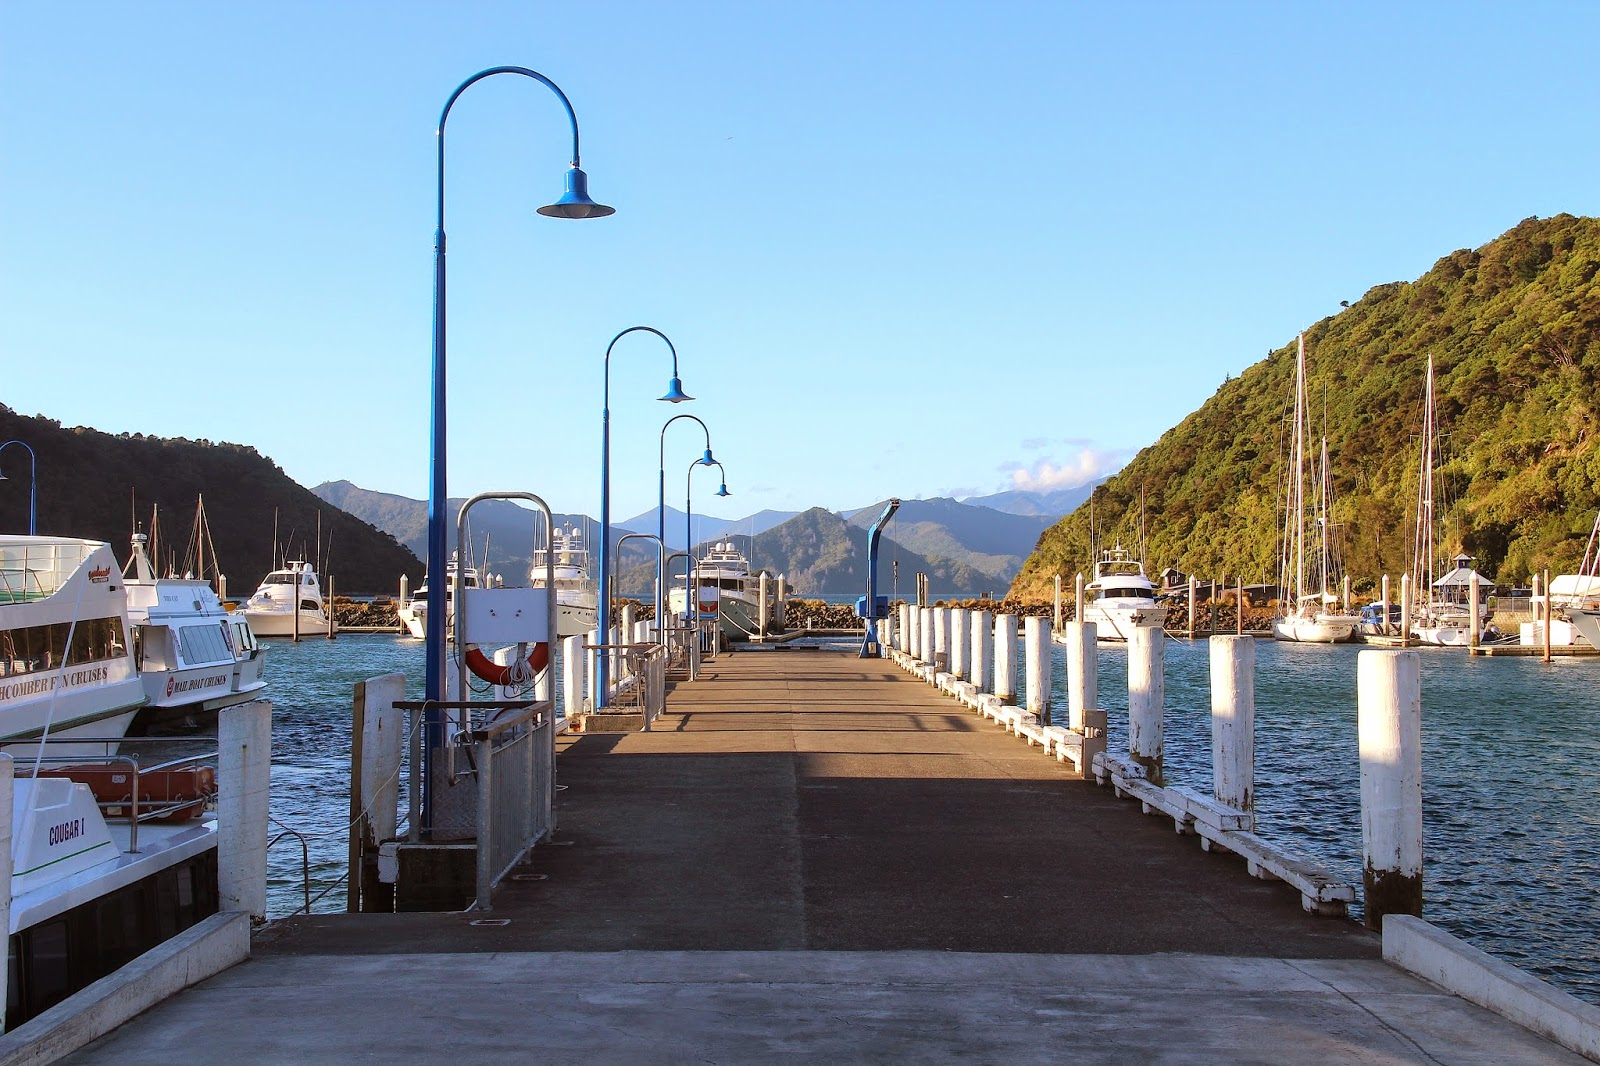 Picton Harbour New Zealand